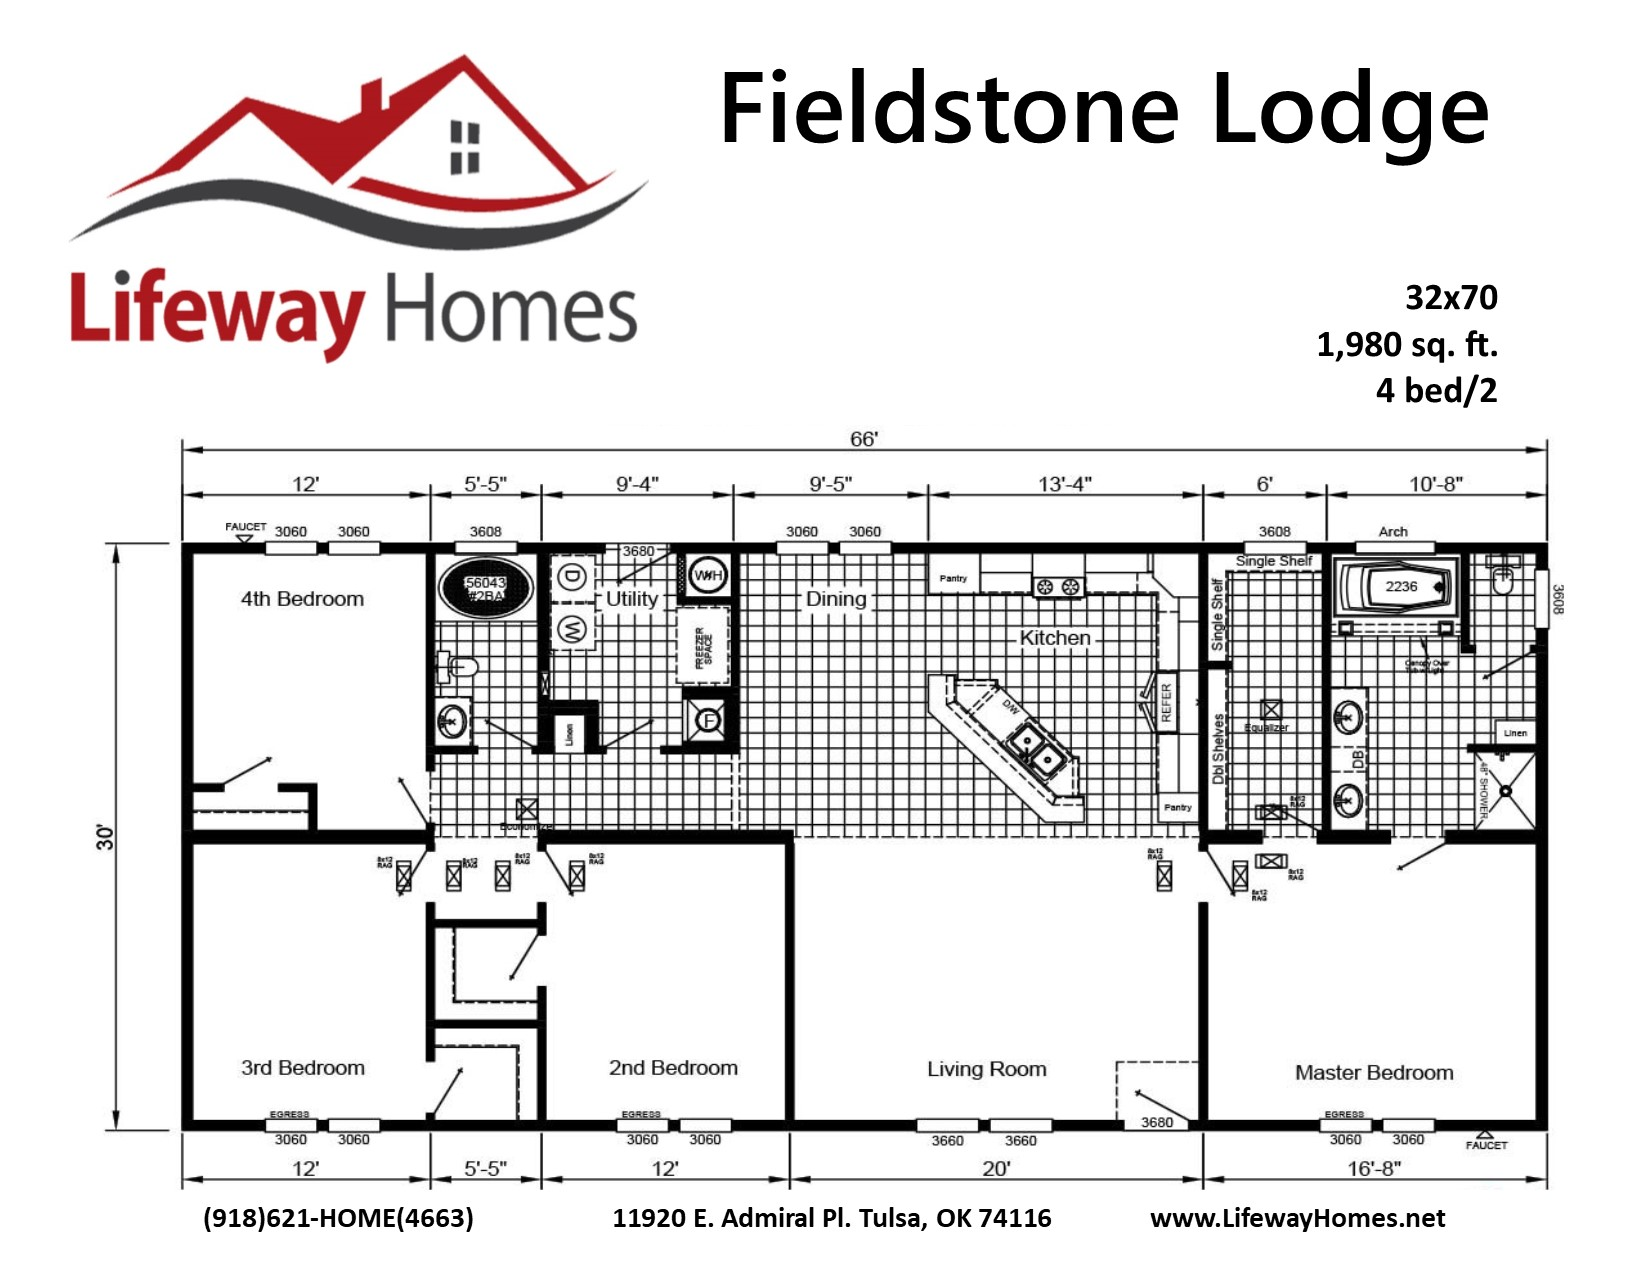 Fieldstone Lodge Home